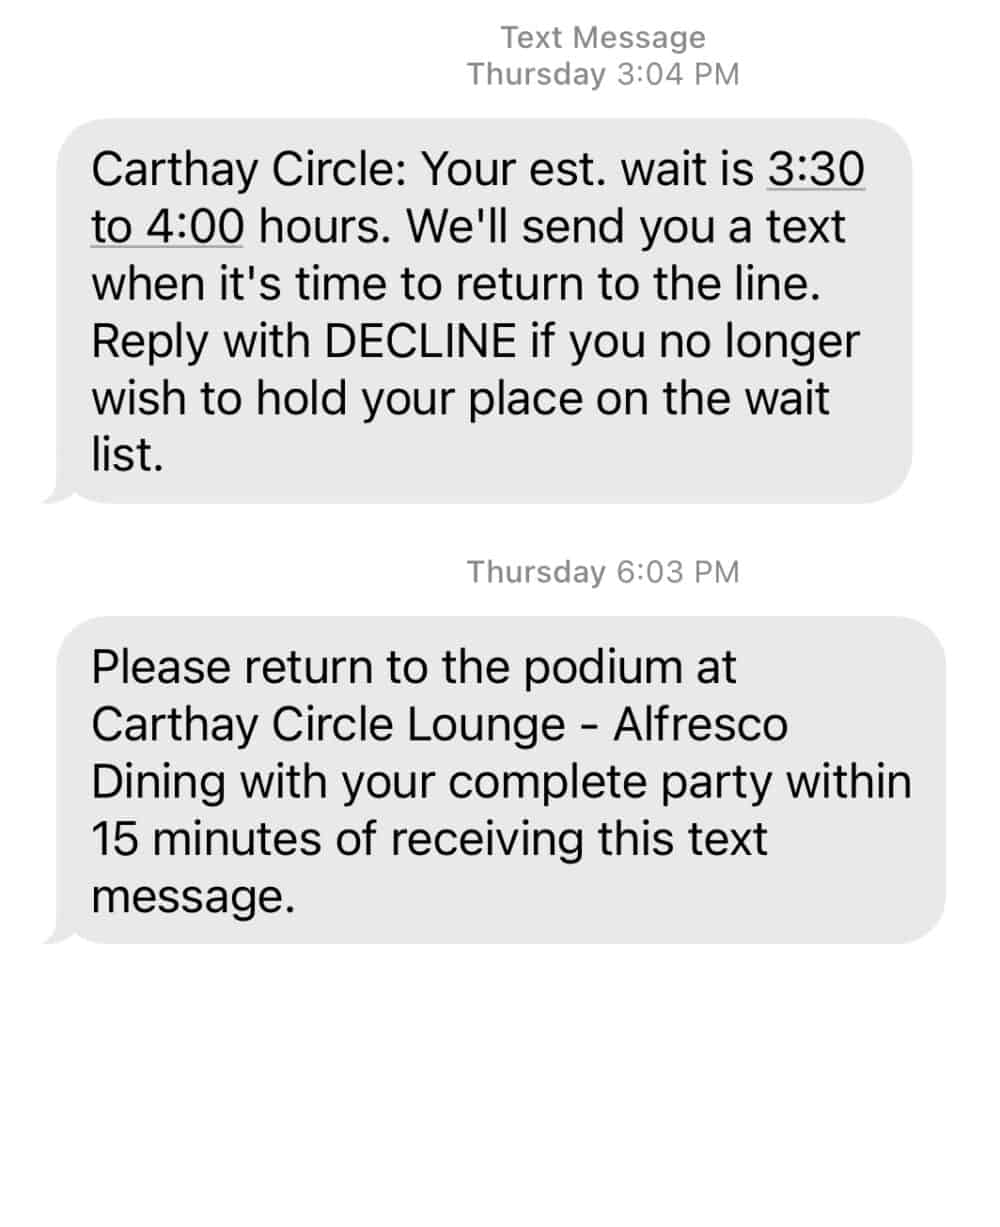 return texts from Carthay Circle reservation